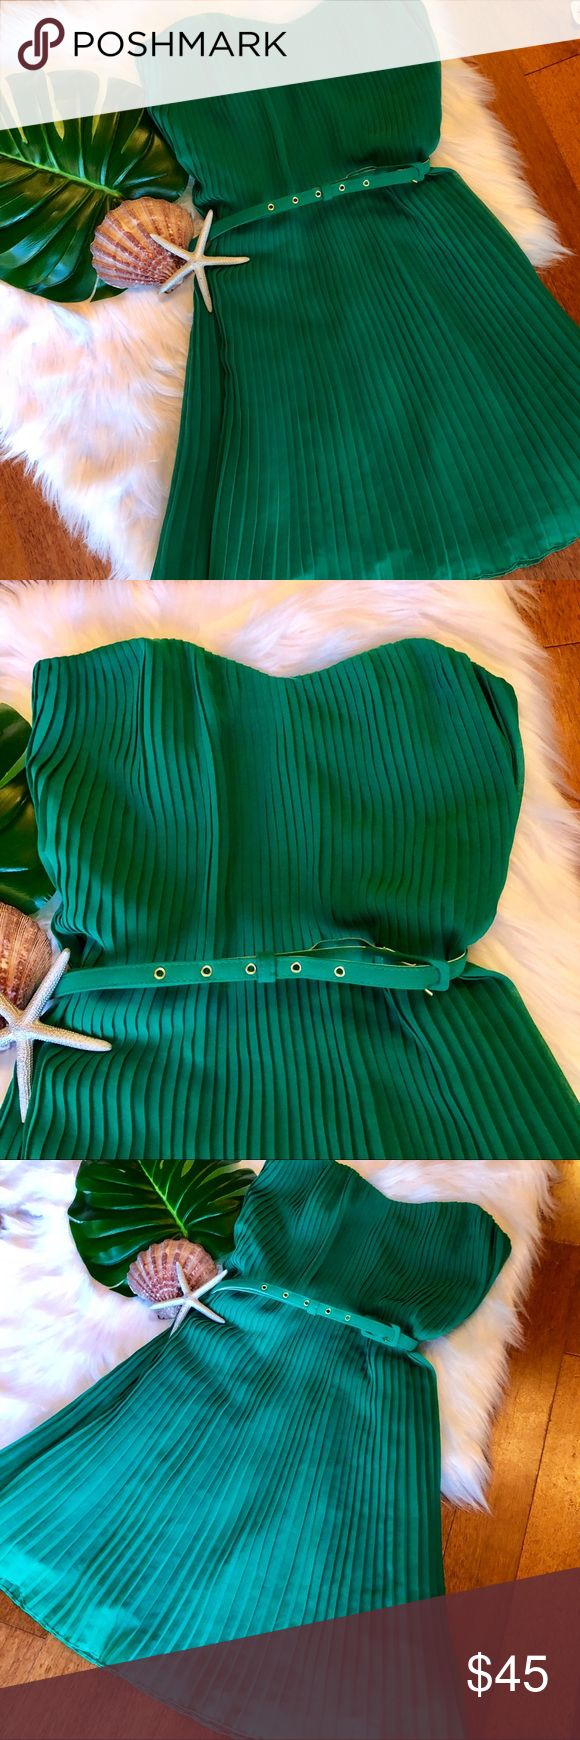 "Kelly Green French Connection Pleated Strapless Kelly Green French Connection Pleated Strapless Dress Size 8  Belted to help give the effect of a tiny waist. Gorgeous shade of green. Great condition only worn once.   Measurements  Length 30"" Chest 17"" French Connection Dresses"